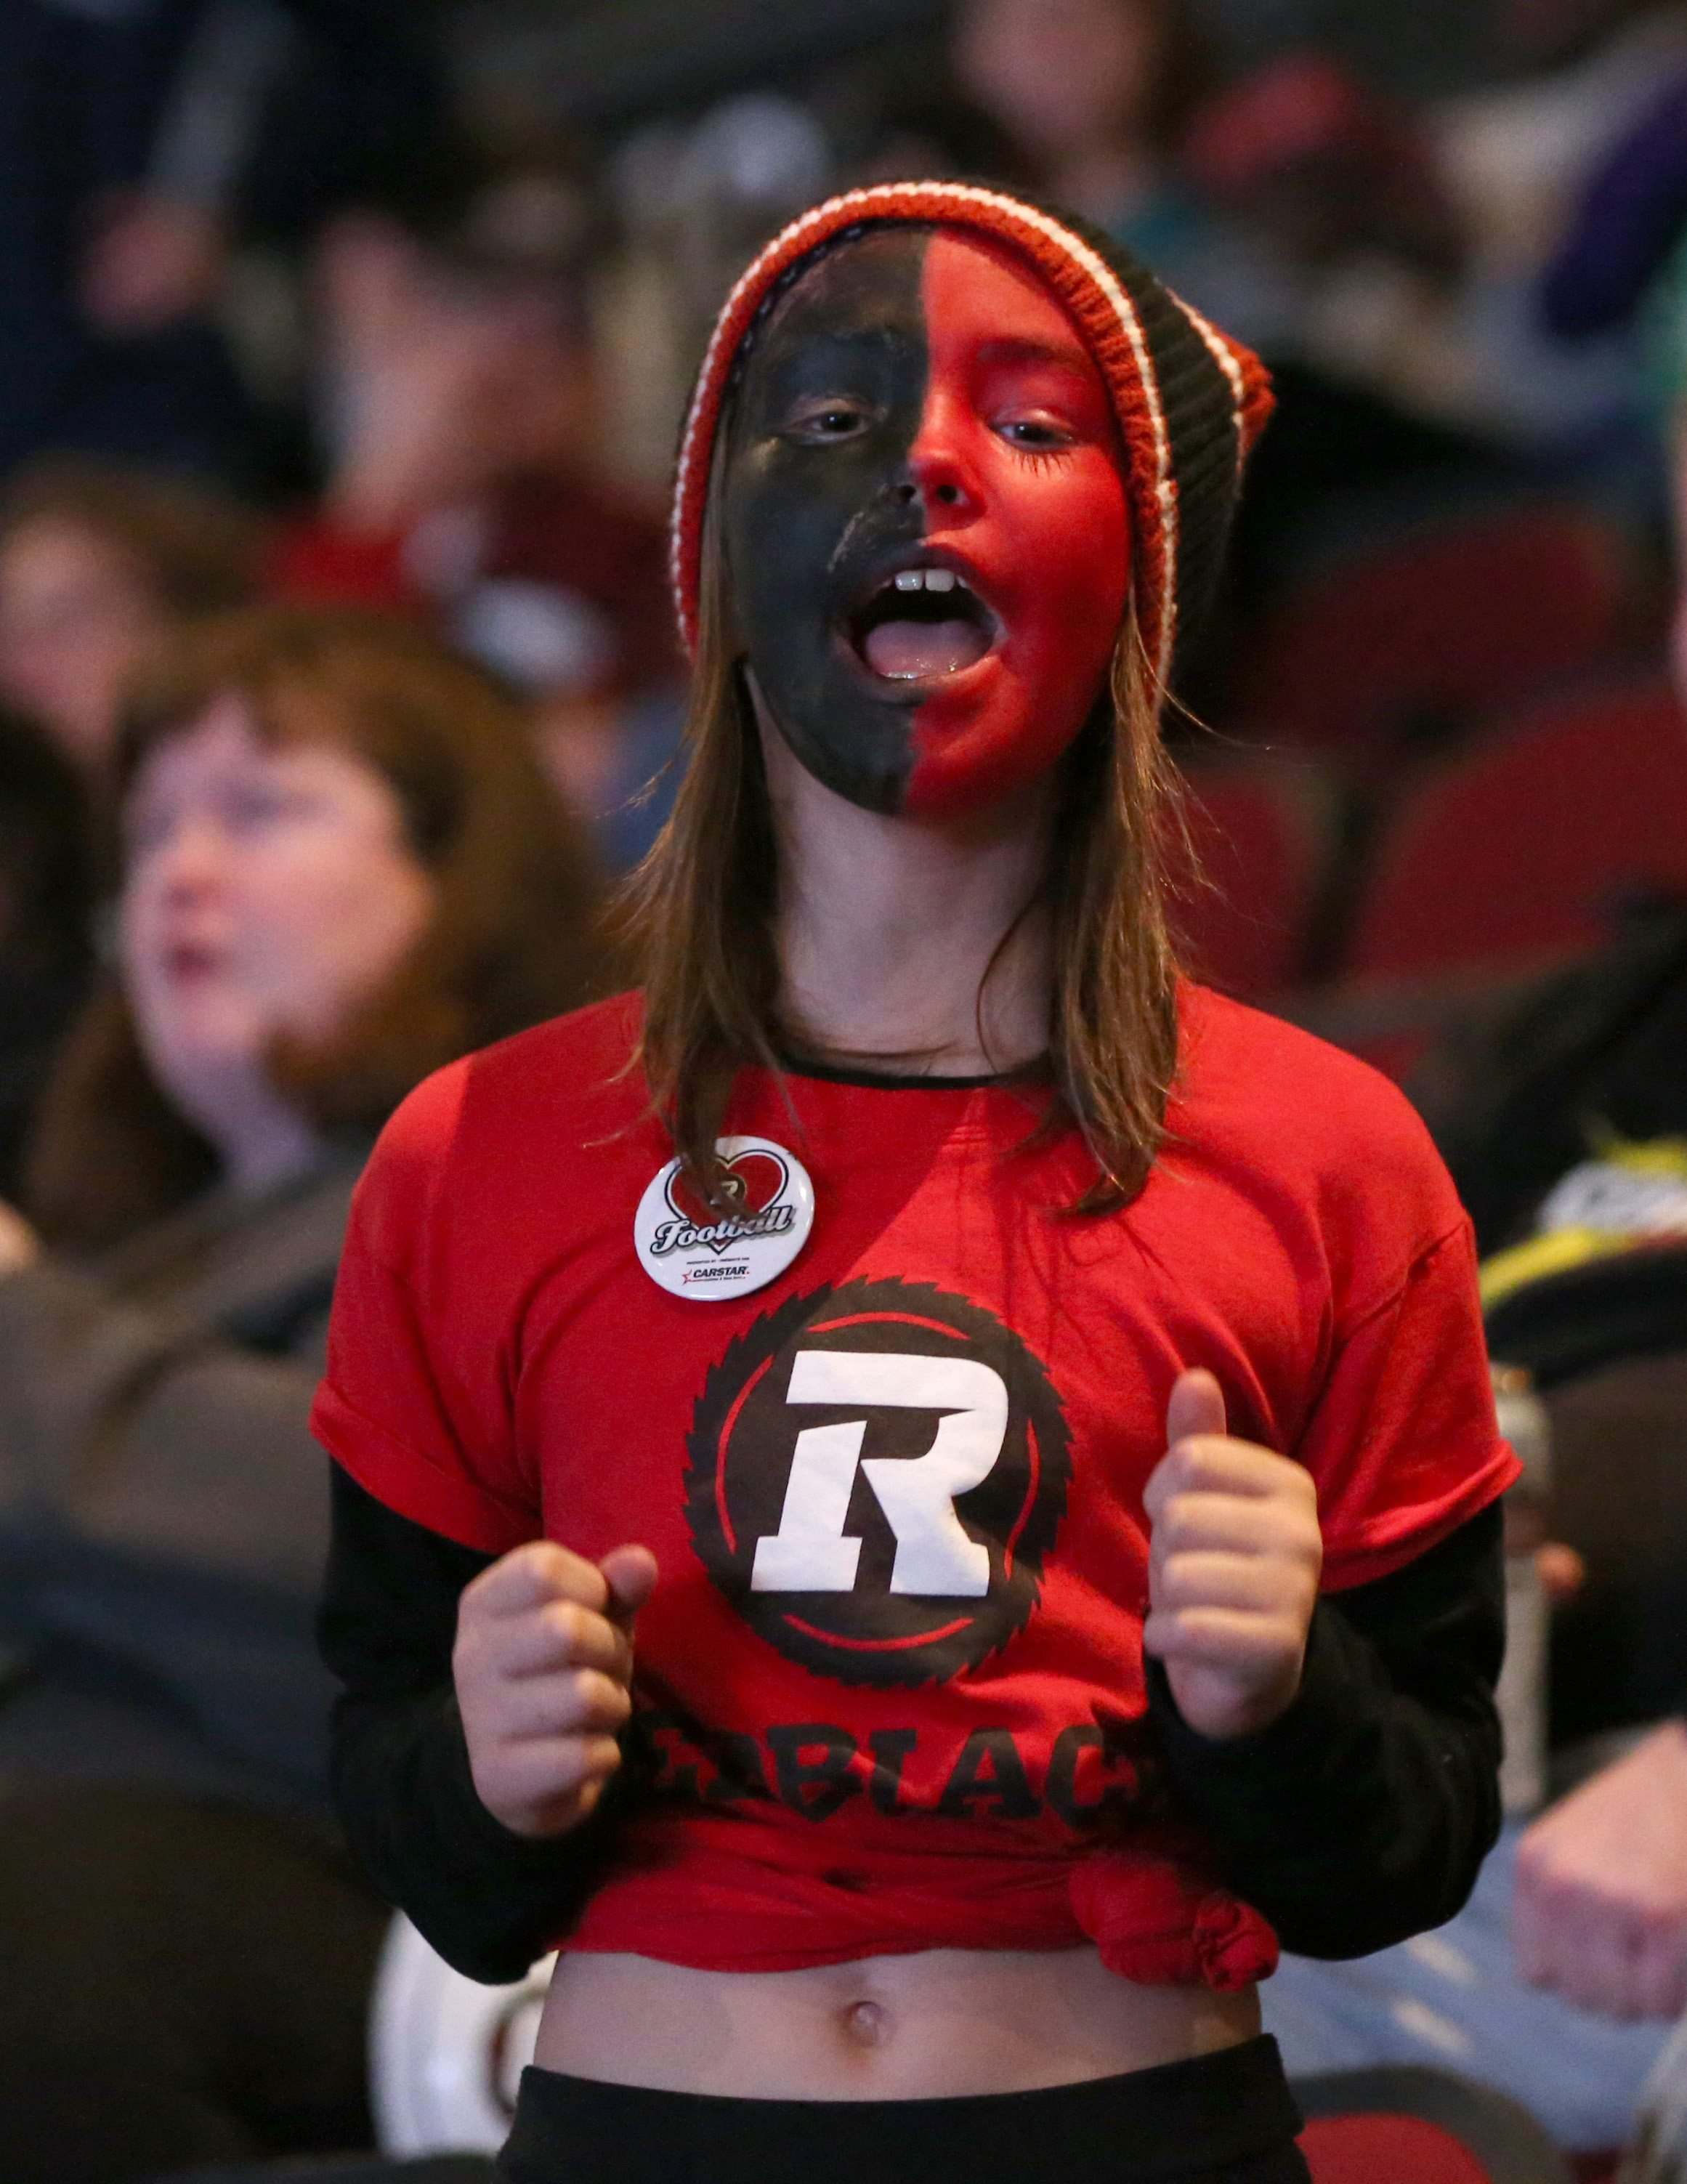 Sophie Gingras, nine, showed her true colours — black and red, of course. Photo by Jana Chytilova, OTTAWA magazine.